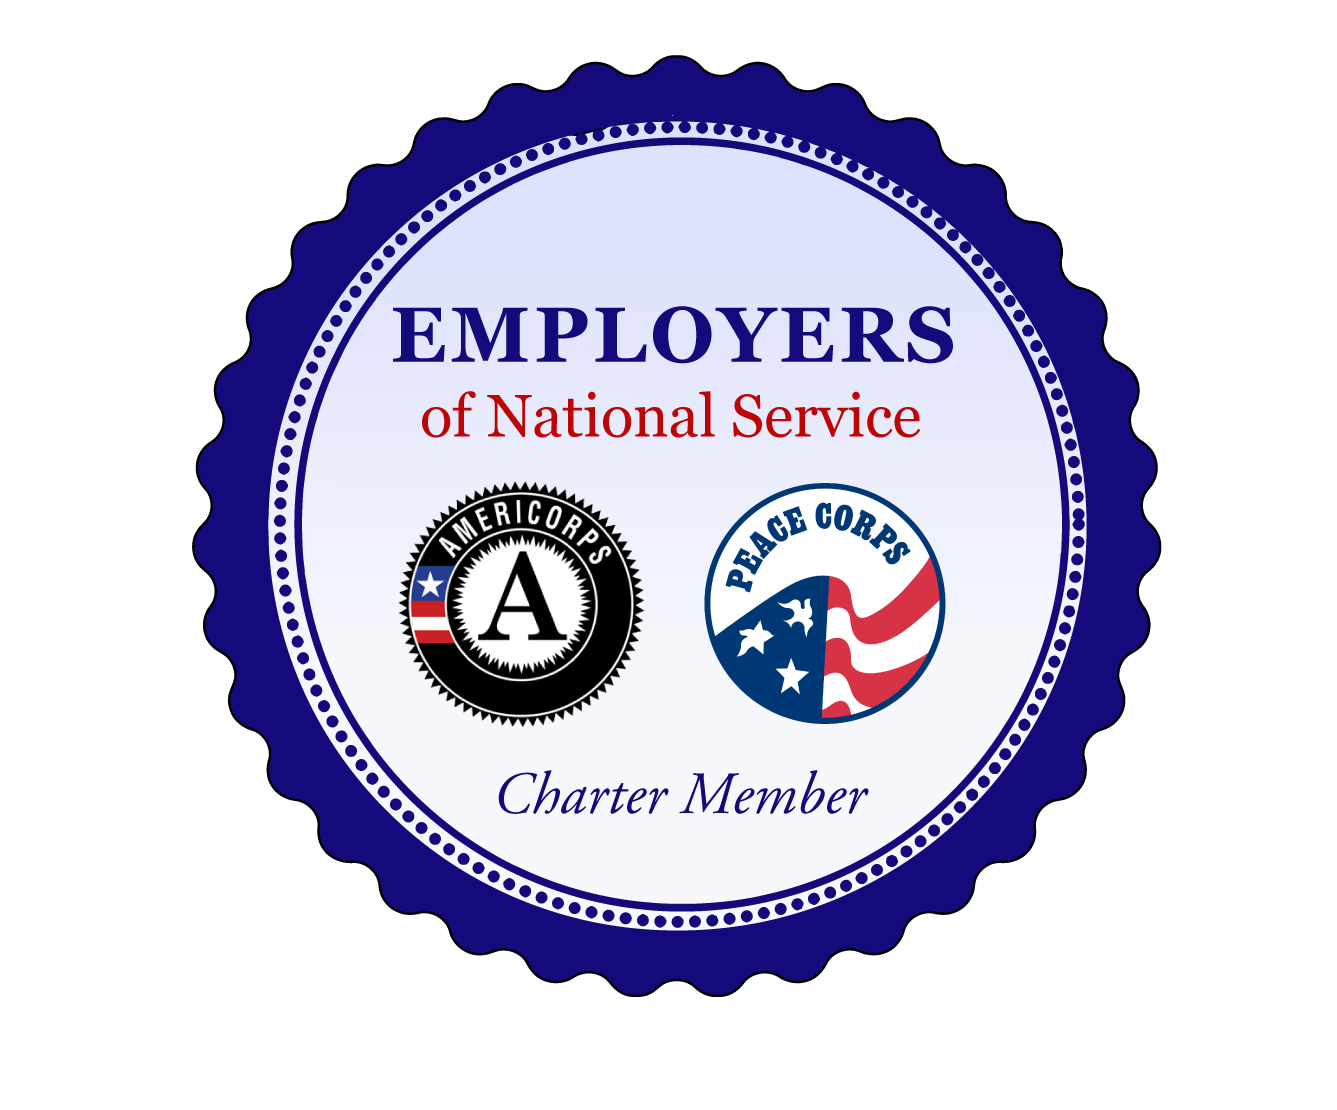 Employers-of-National-Service-Charter-MemberBadge.png